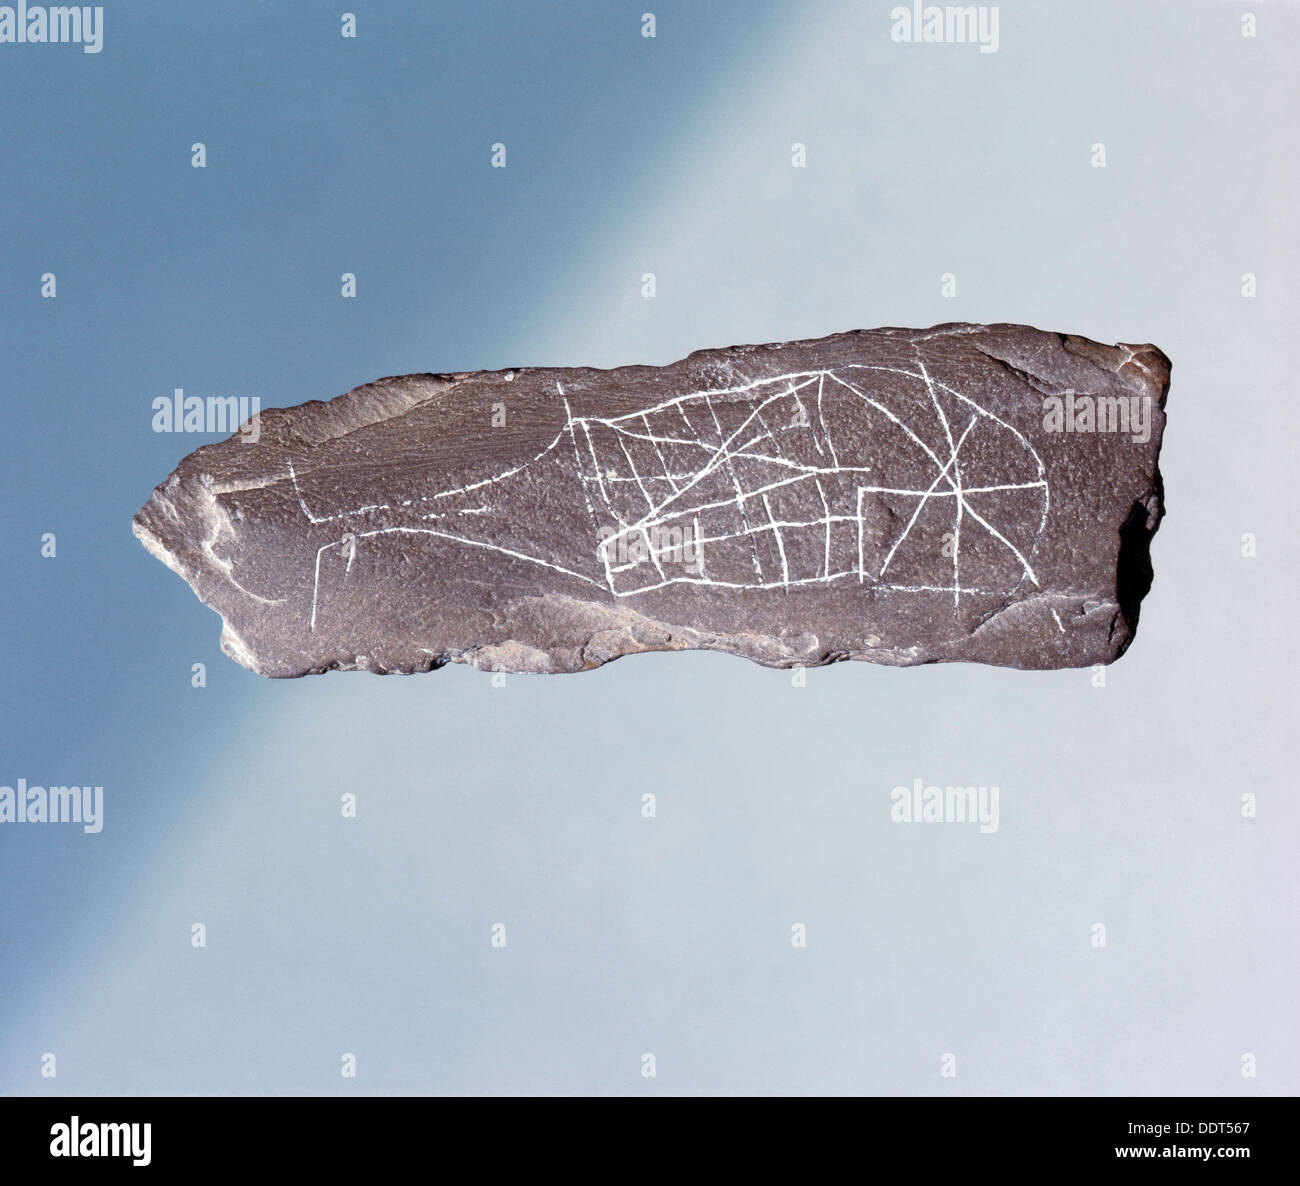 Rock engraved with a figure of a whale, pre-Viking, Sweden. Artist: Werner Forman - Stock Image